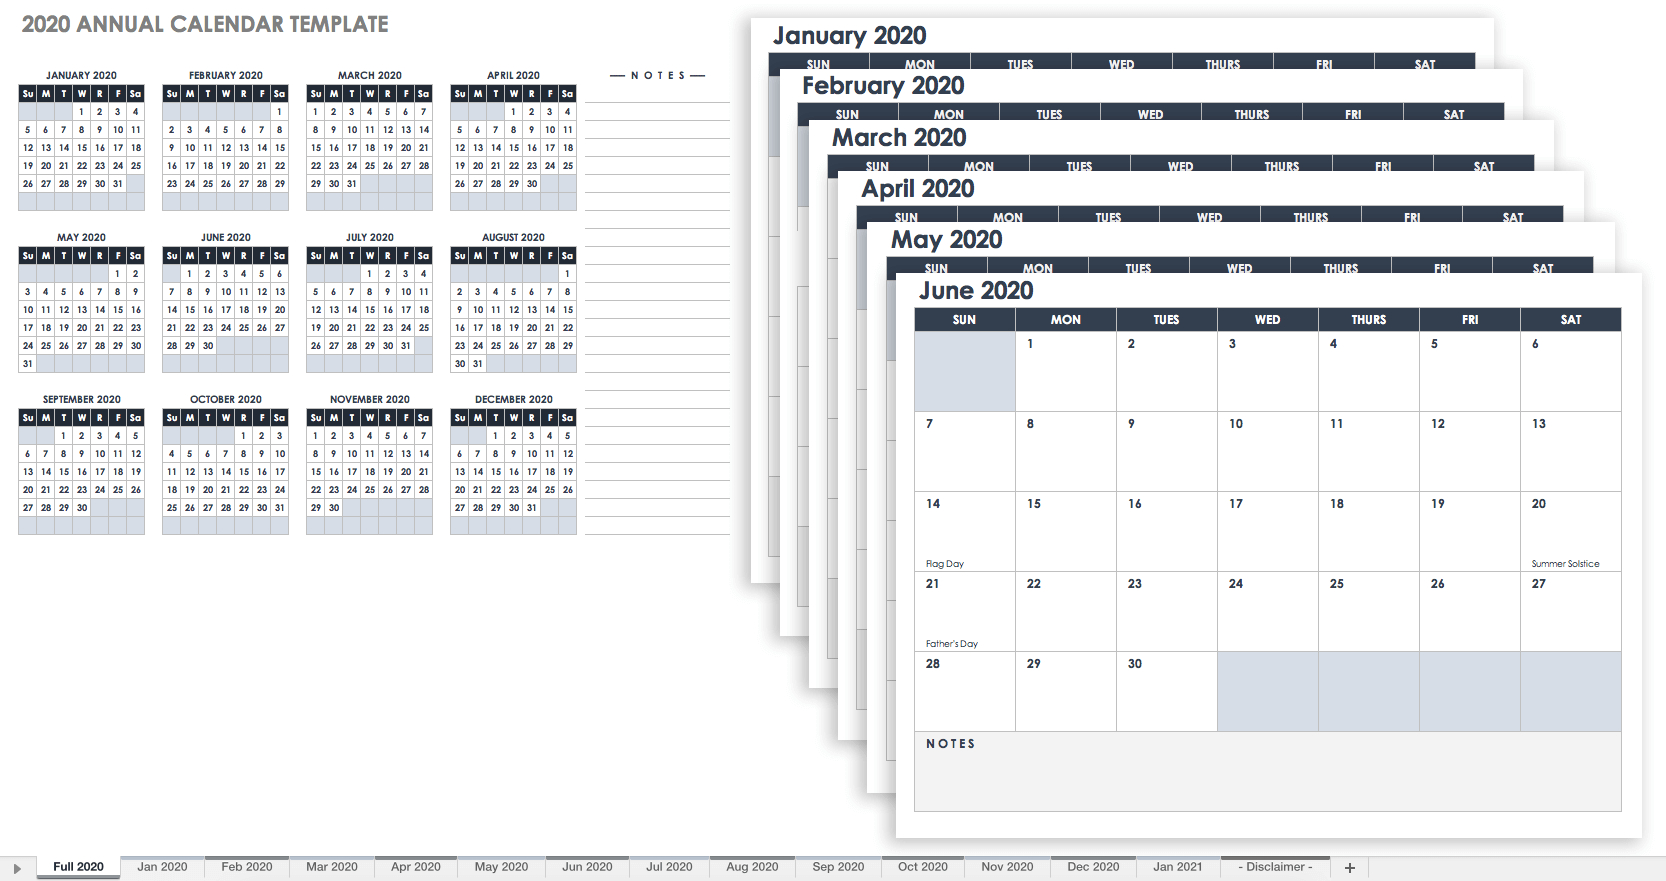 Free Blank Calendar Templates - Smartsheet in October Employee Nights And Day Schedule Template